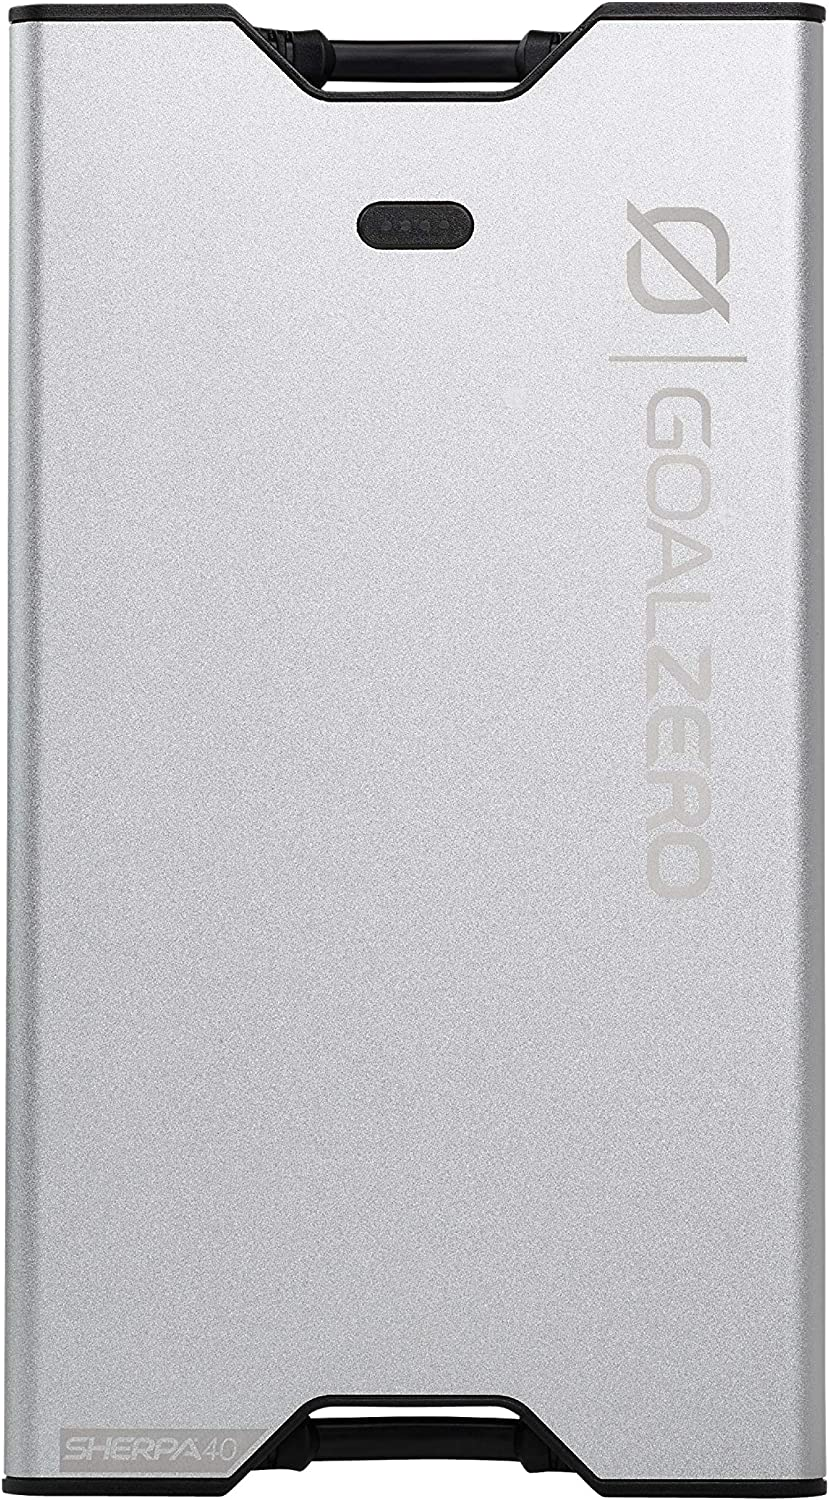 Goal Zero Sherpa 40 12000 mAh Power Bank Battery Pack Charger, Small Portable Power Bank, Lightweight Slim Design Compatible with iPhone and Samsung